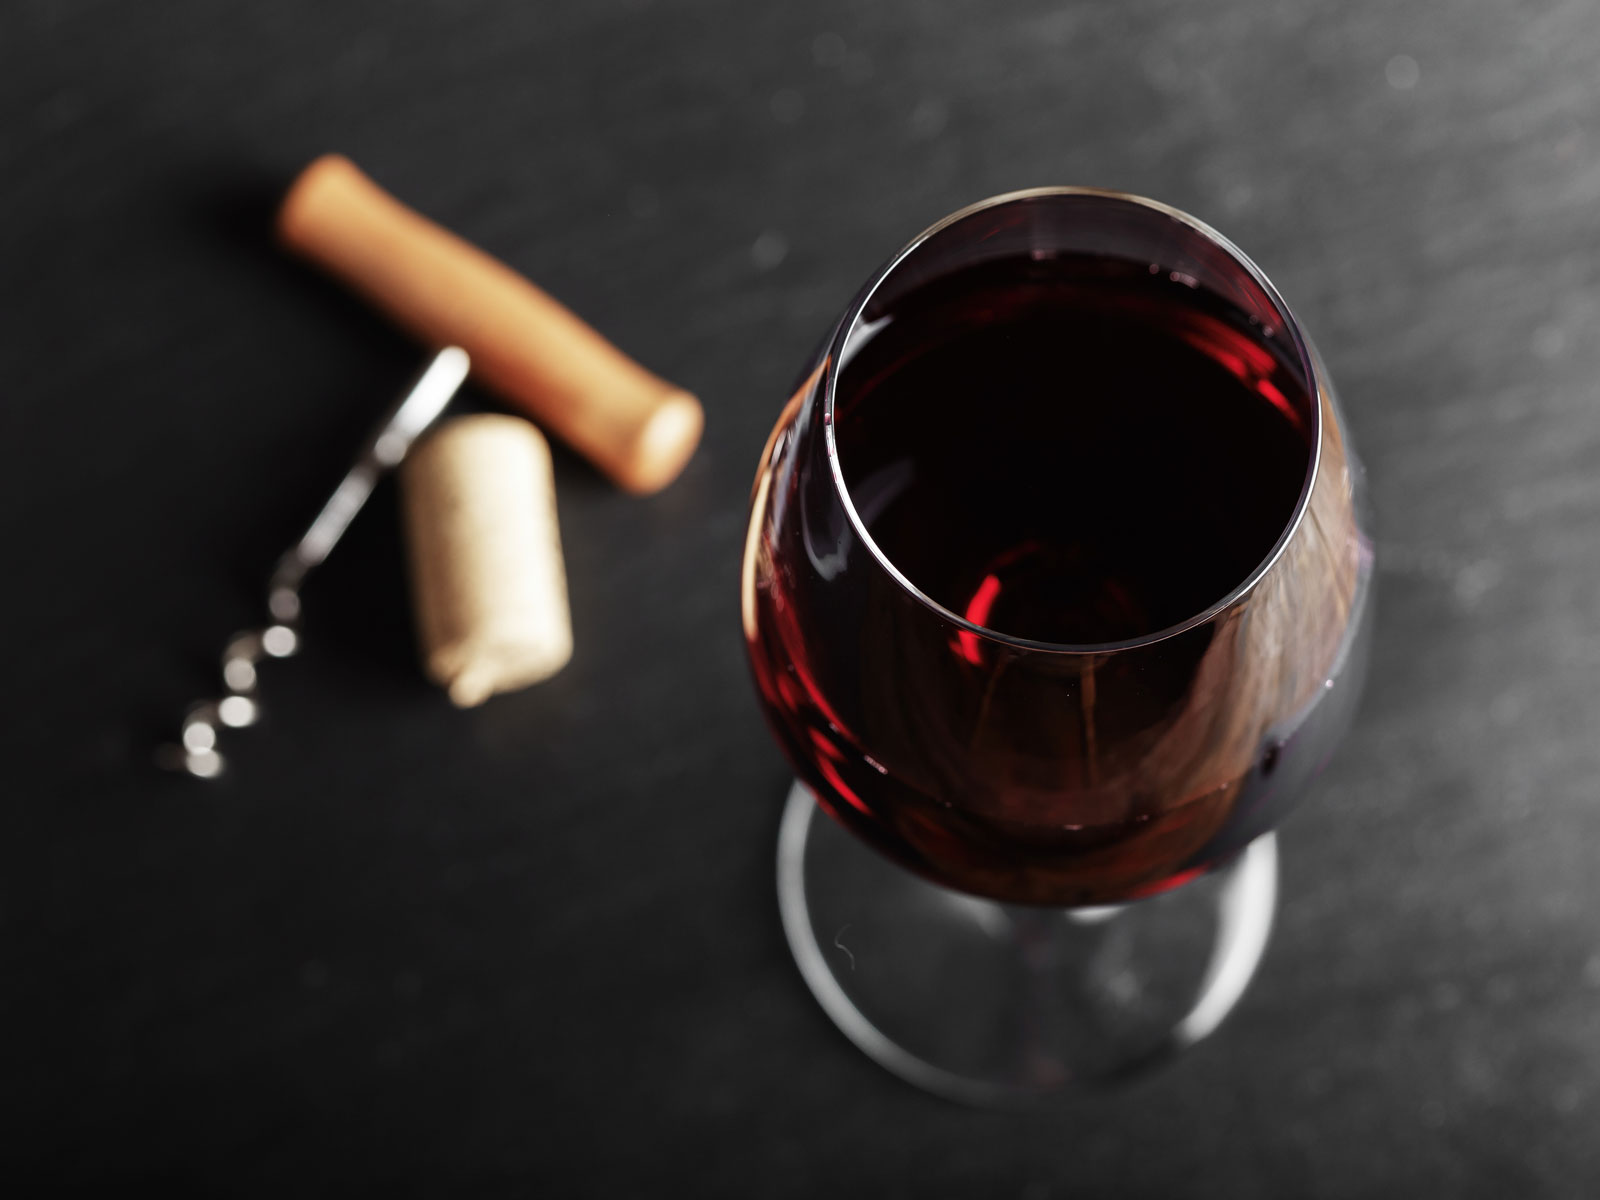 Red wine with corkscrew